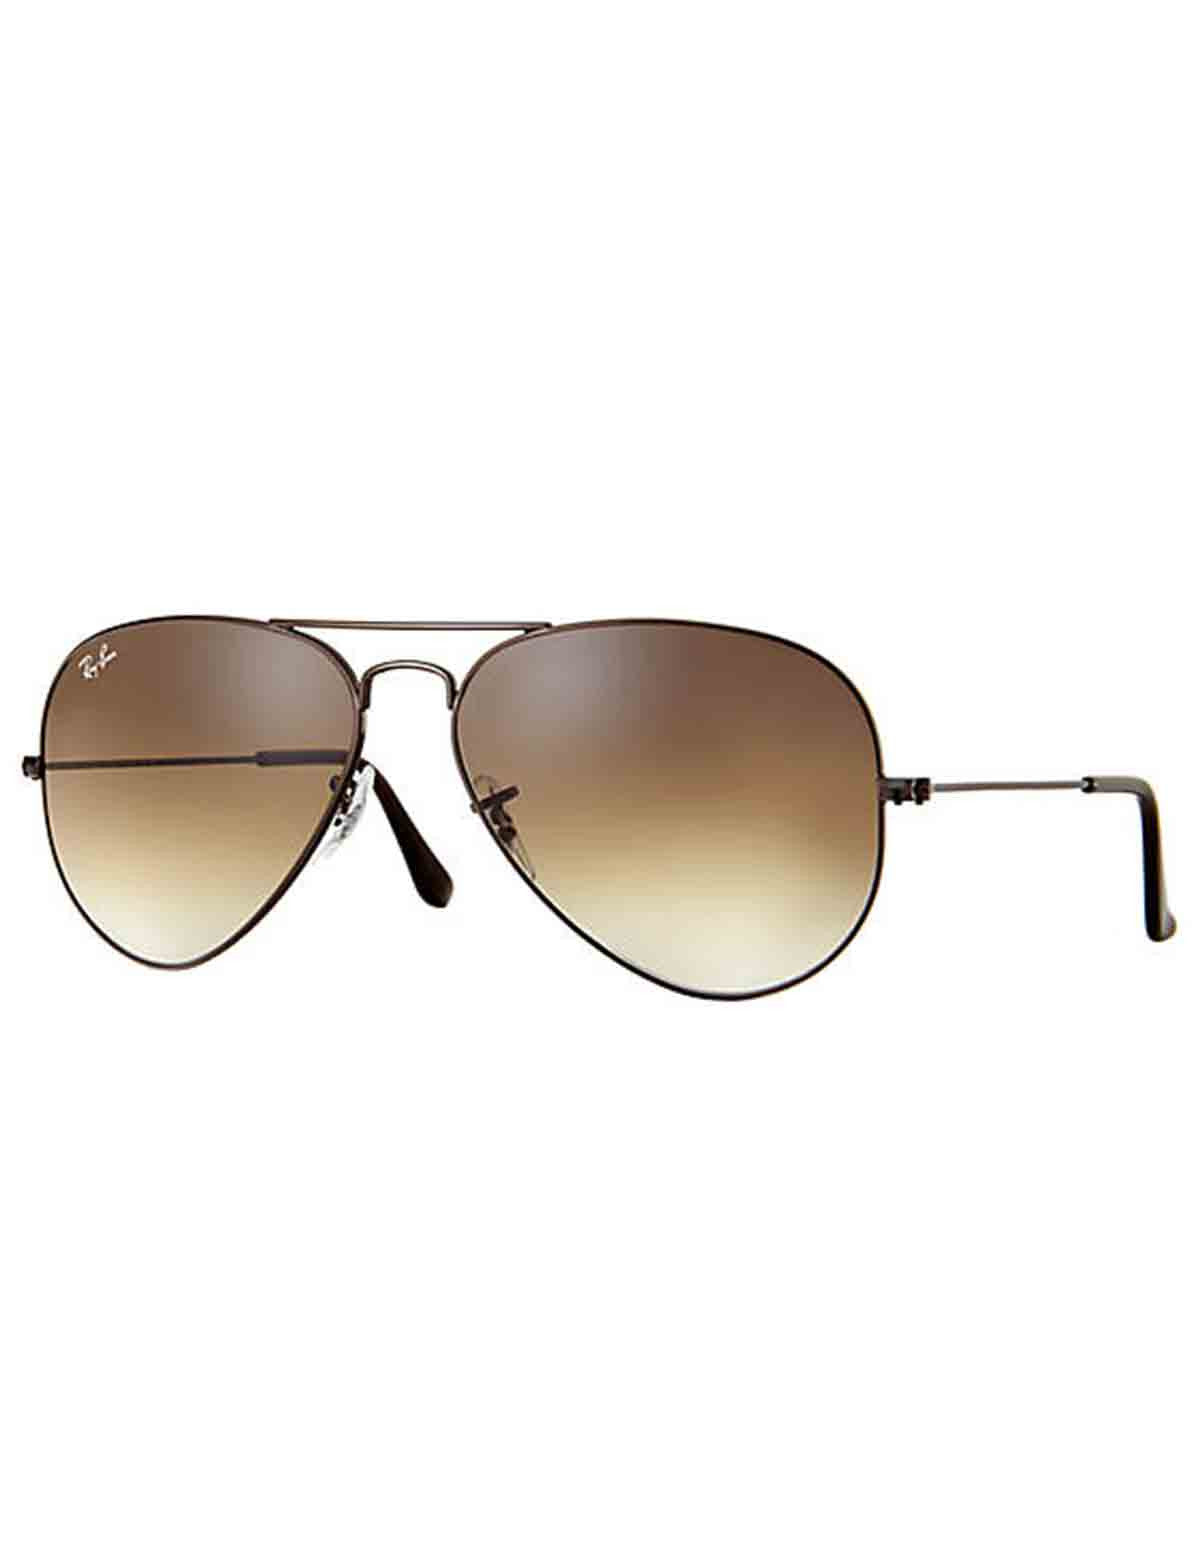 Ray-Ban Injected Sunglasses Light Brown Brown Gradient